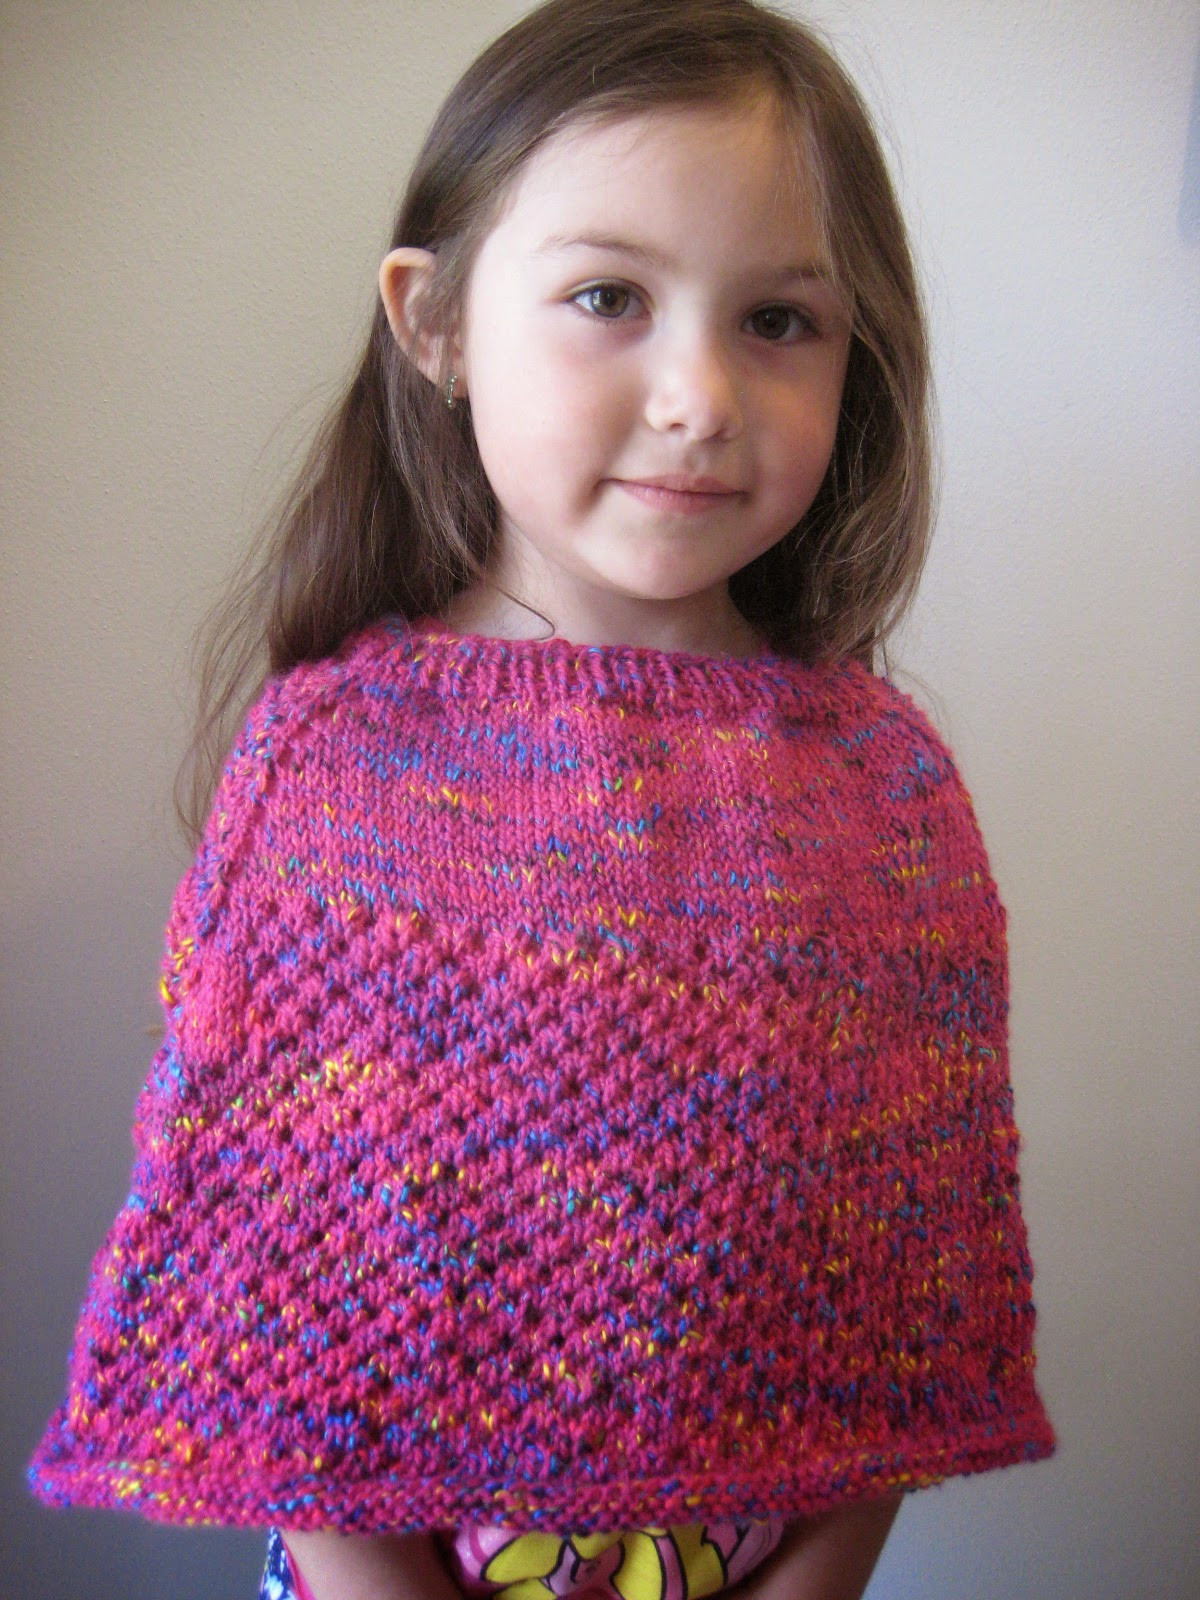 Poncho Knitting Patterns Luxury Balls to the Walls Knits Cellular Stitch Kids Poncho Of Poncho Knitting Patterns Fresh Click for Close Up Anything and Everything